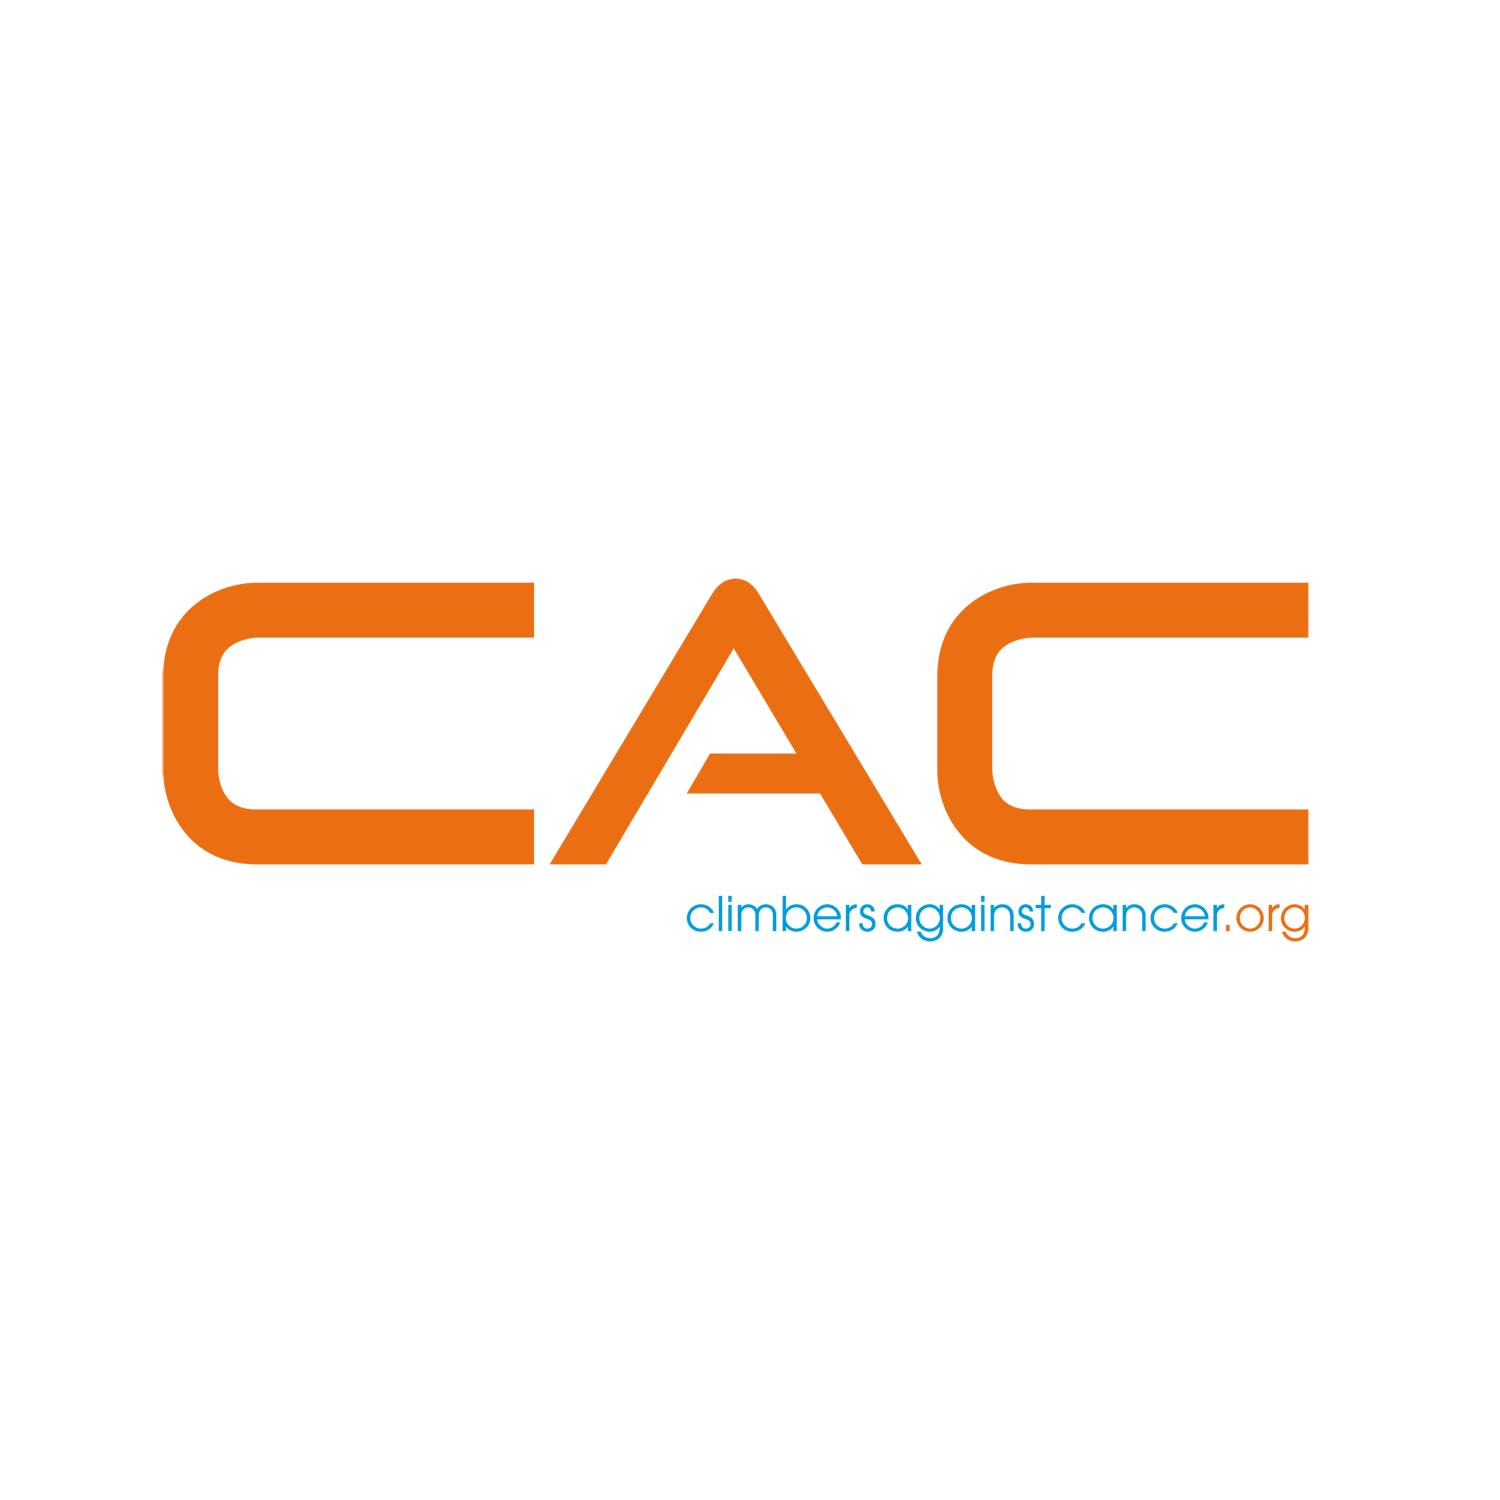 CLIMBERS AGAINST CANCER (CAC)